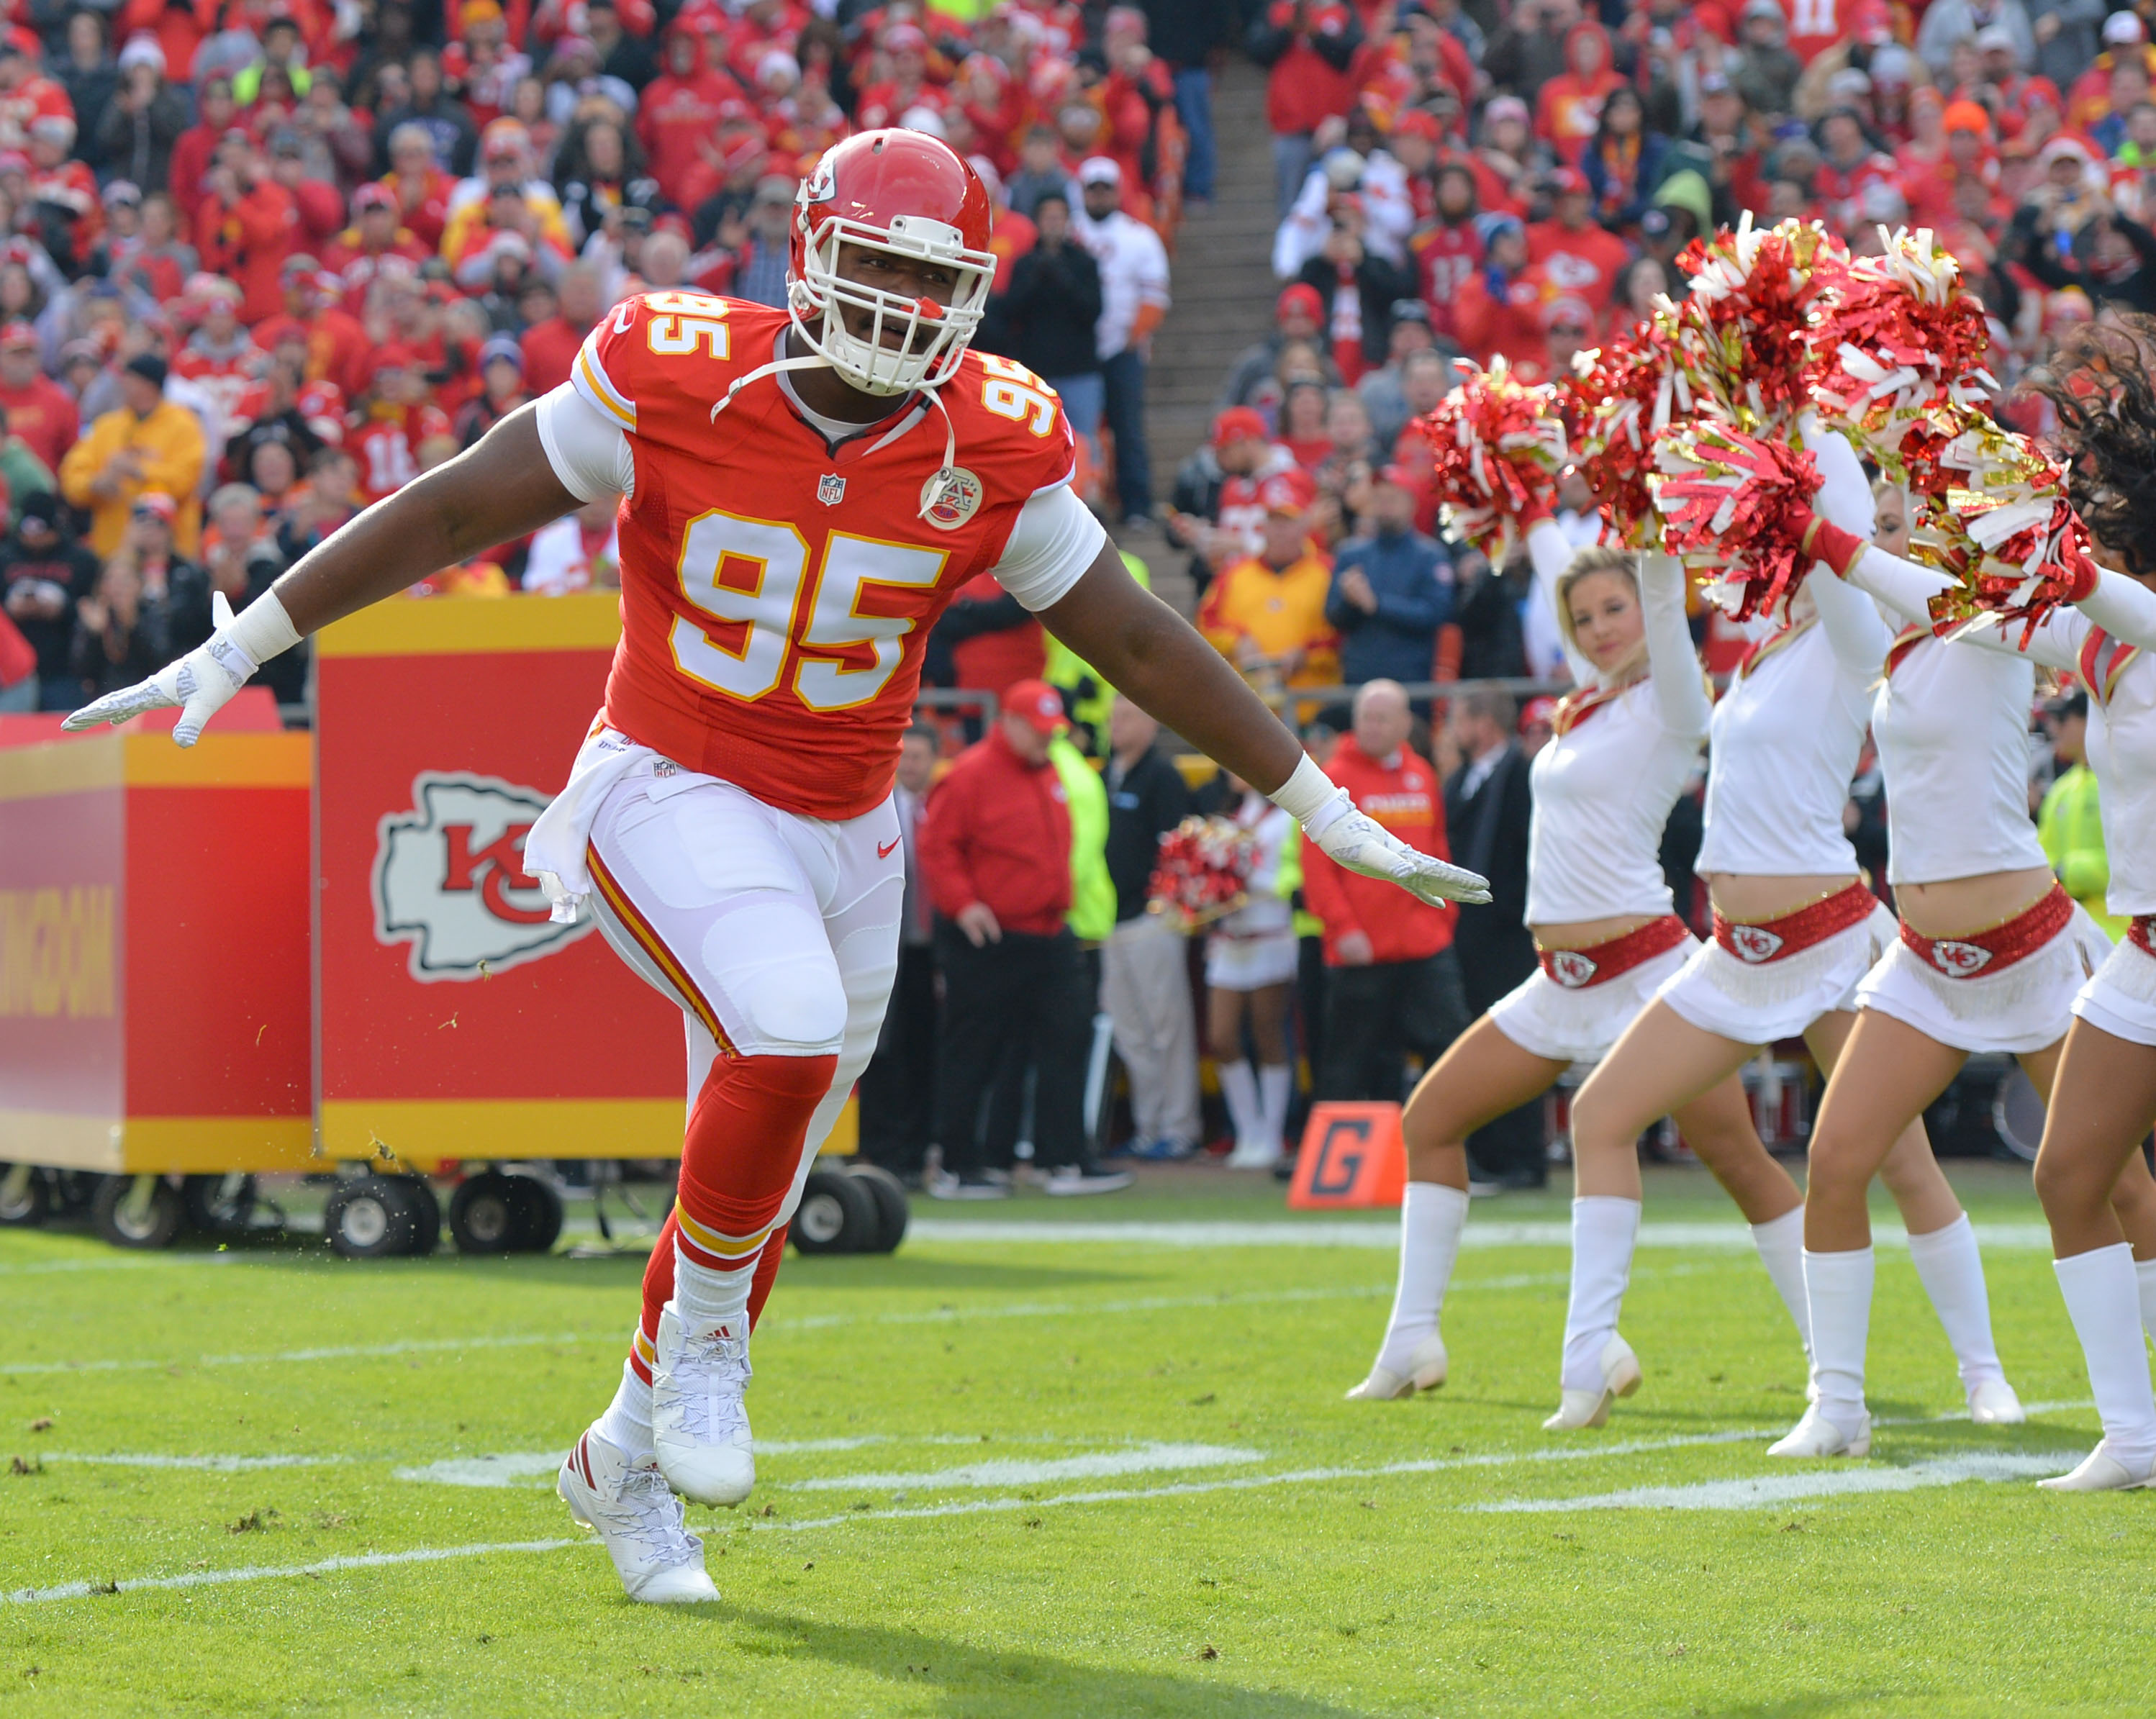 9705058-nfl-tampa-bay-buccaneers-at-kansas-city-chiefs